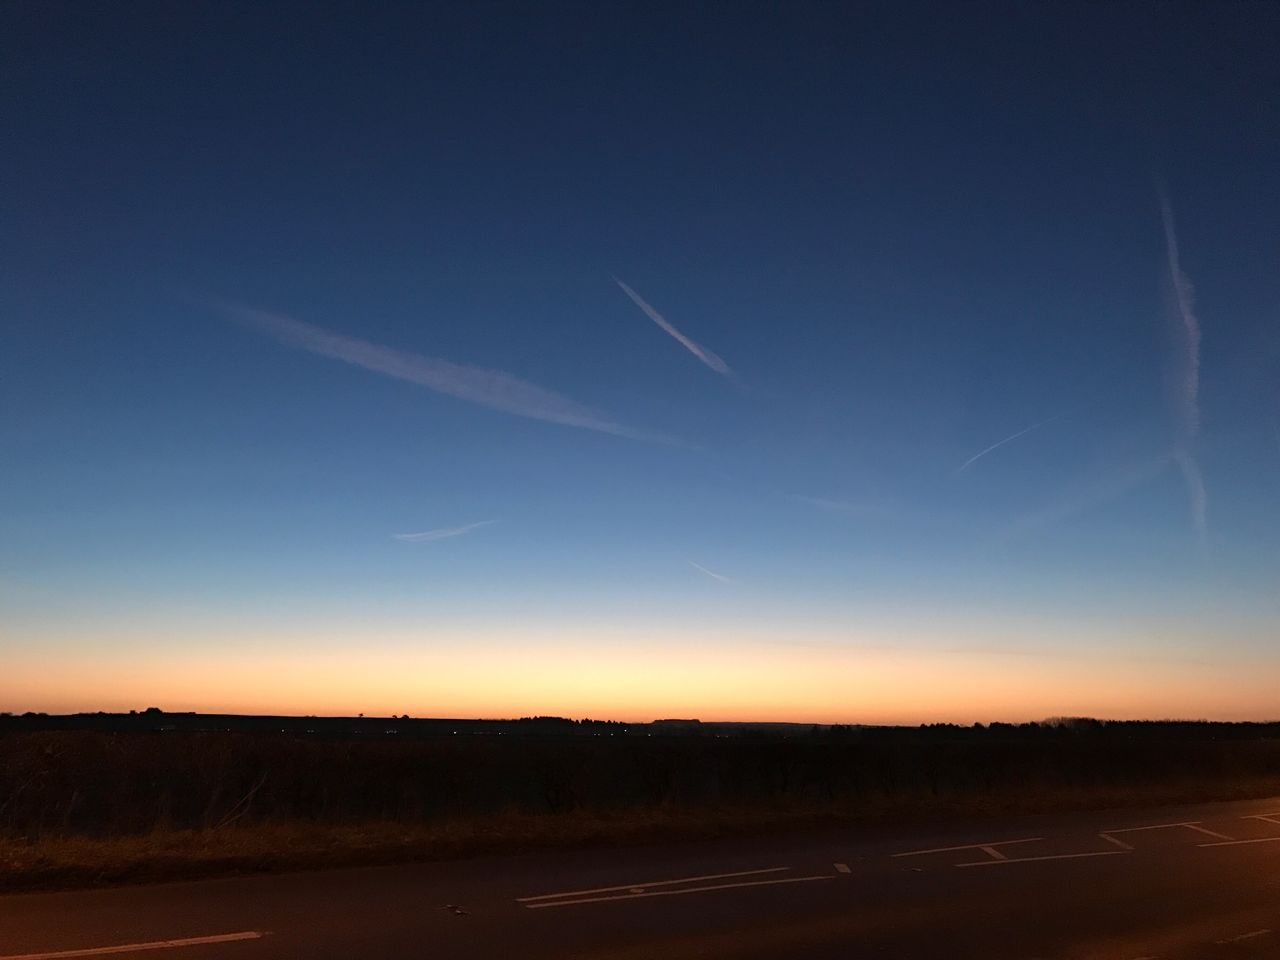 no people, sky, nature, landscape, vapor trail, scenics, sunset, transportation, tranquility, tranquil scene, outdoors, beauty in nature, silhouette, blue, road, clear sky, contrail, day